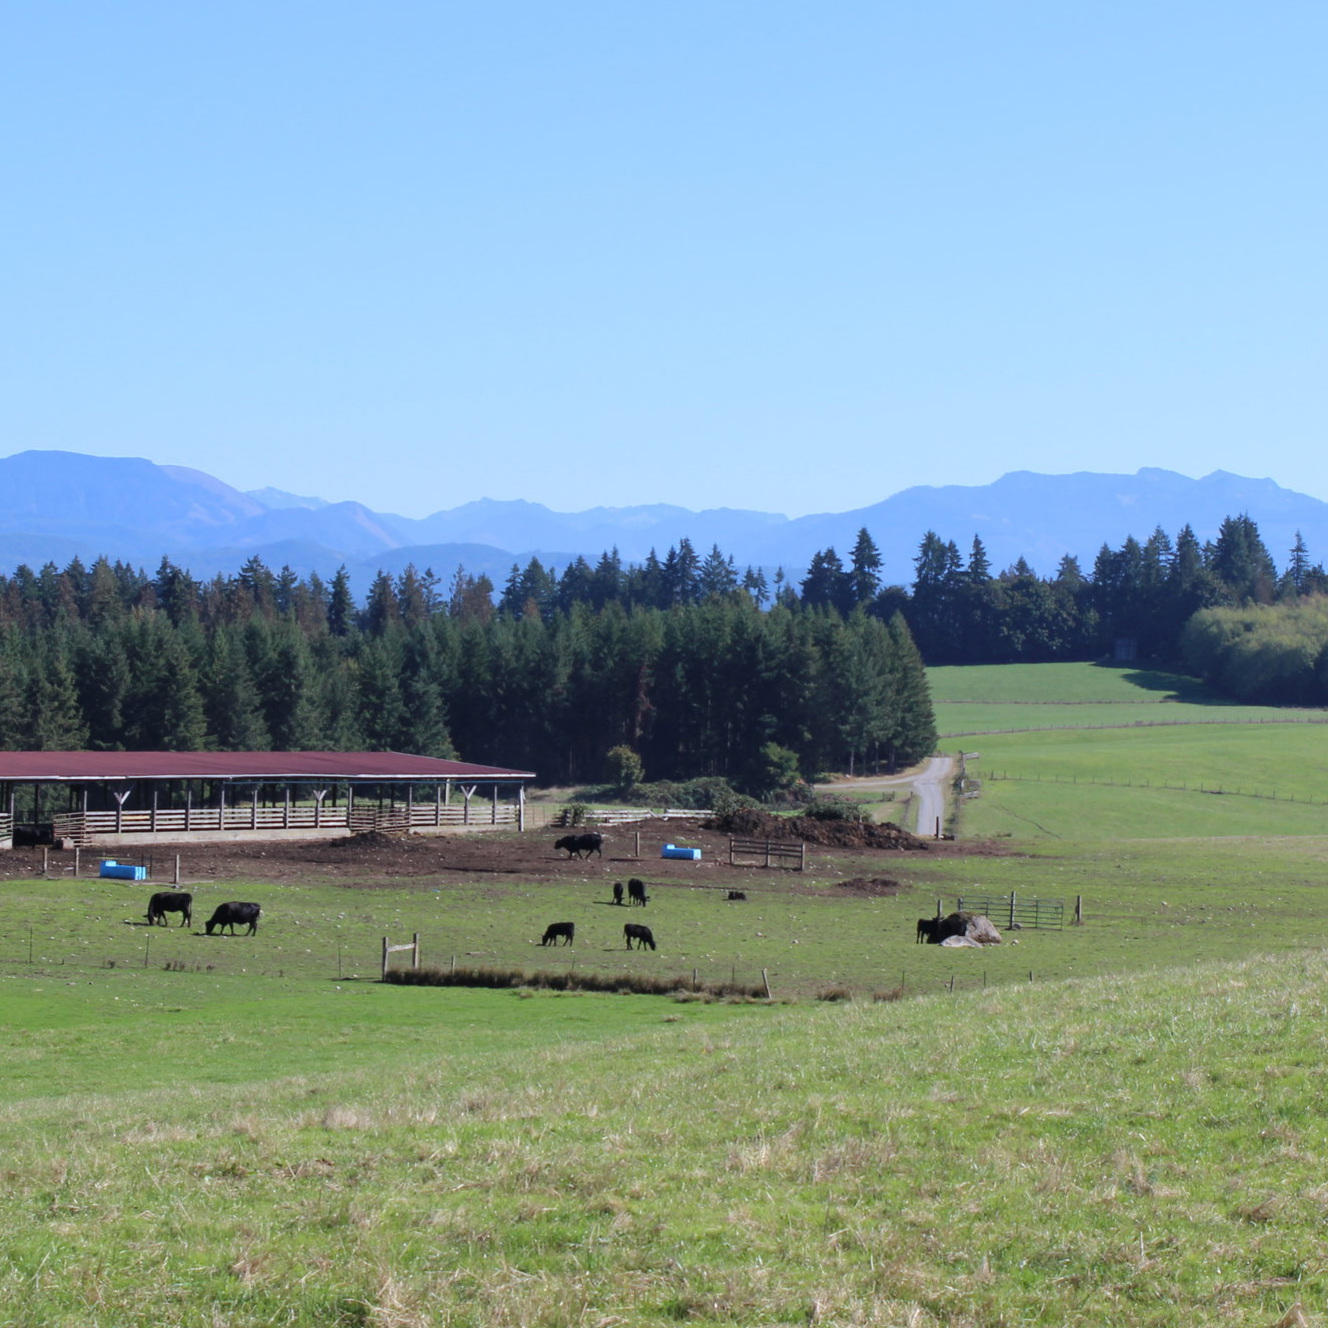 FIELD TRIP OPTION A: ON-FARM LIVESTOCK, SLAUGHTER, WRAP AND PACK - Jubilee Farm, Carnation Farms, Falling River Meats